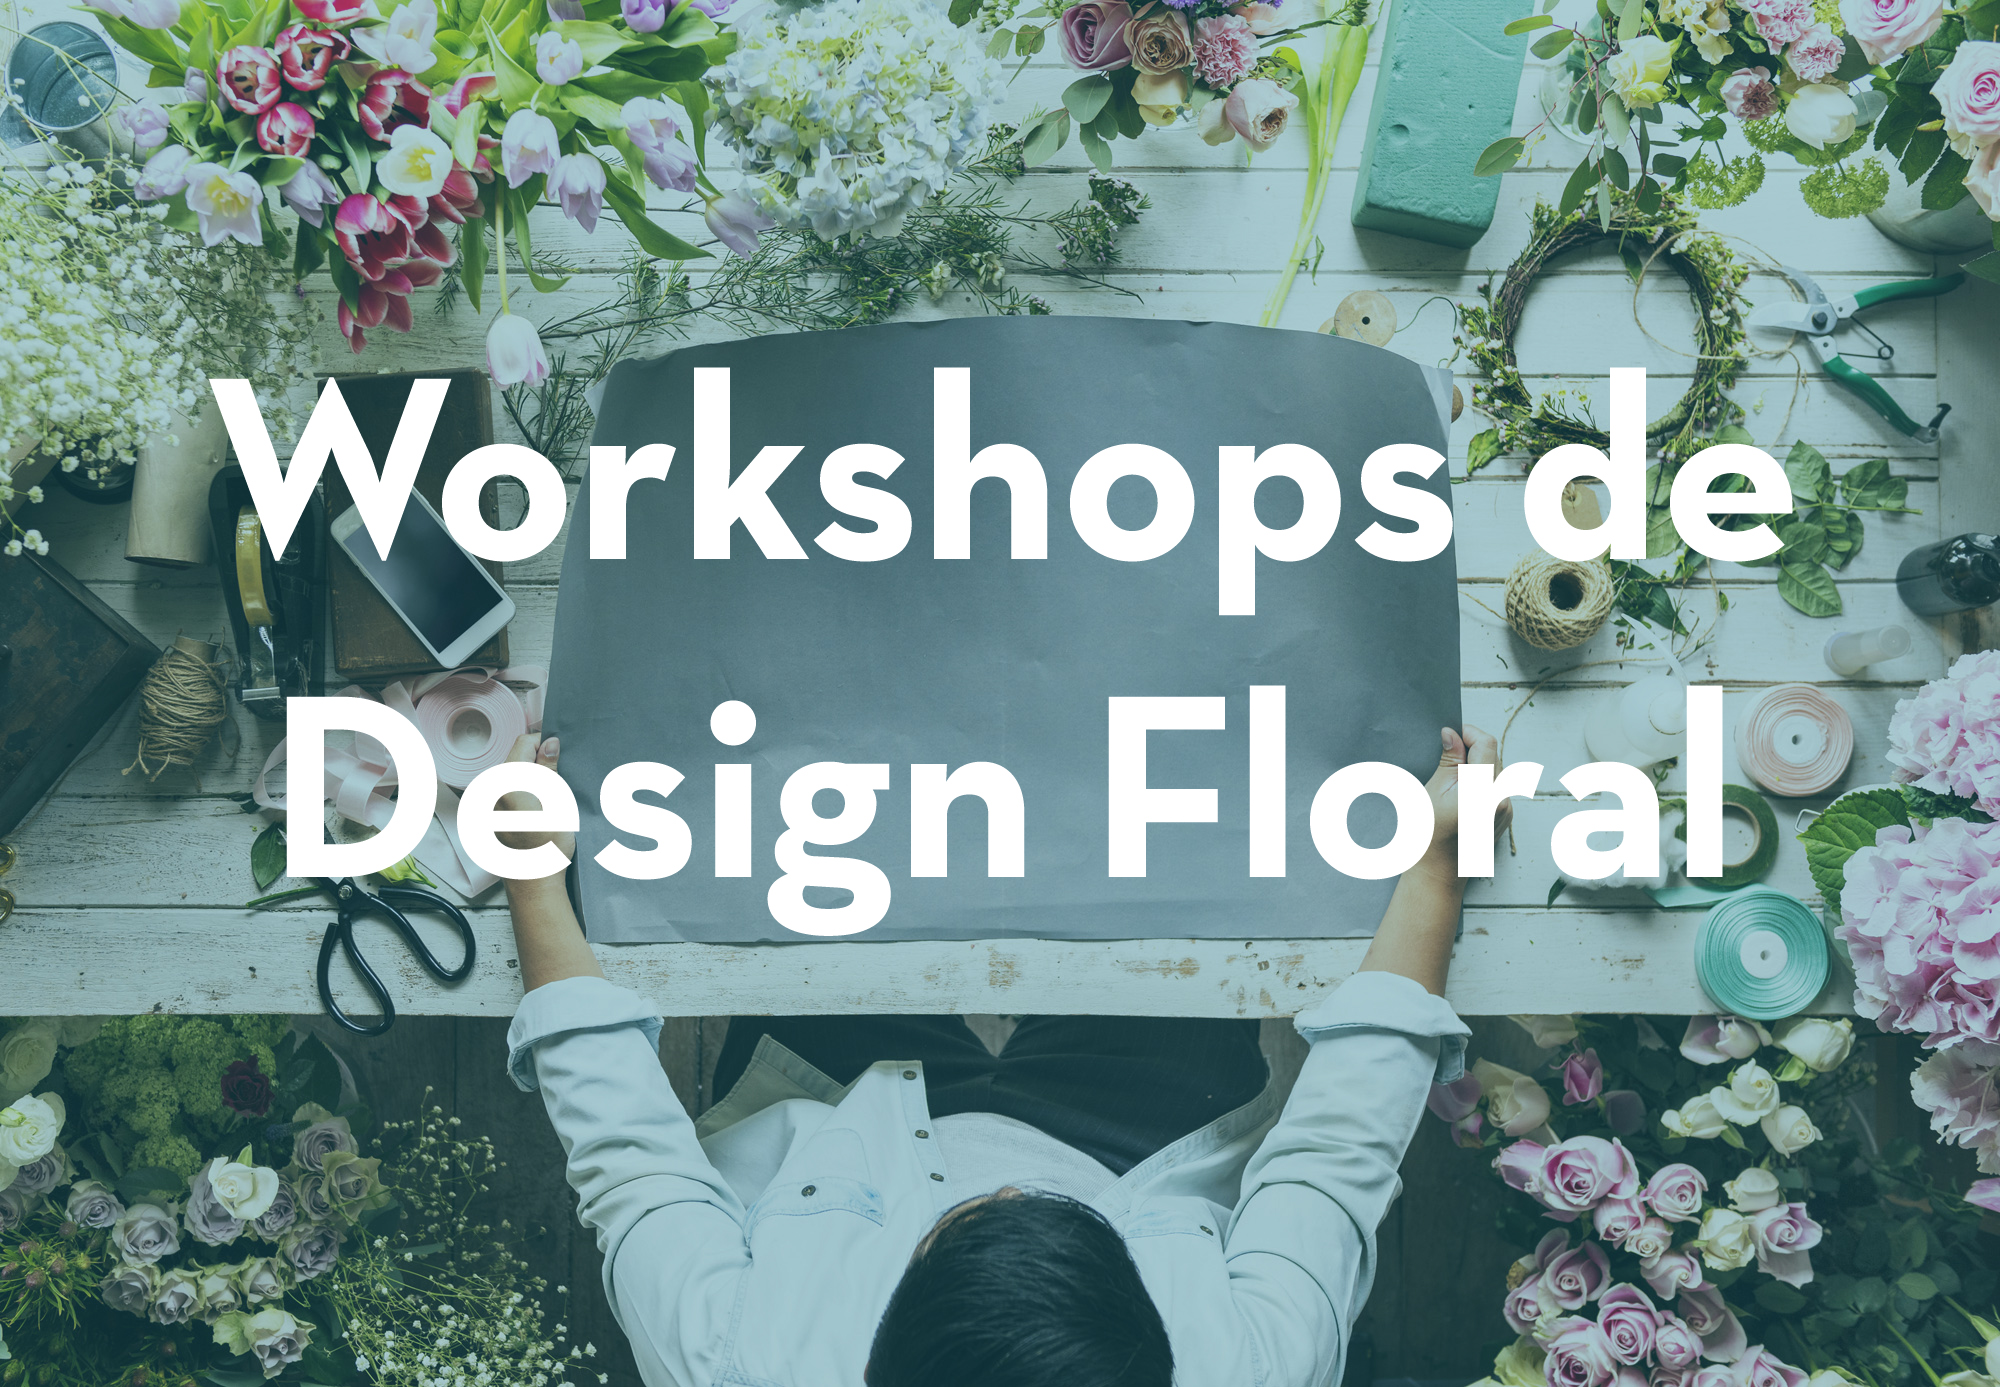 Workshops de design floral